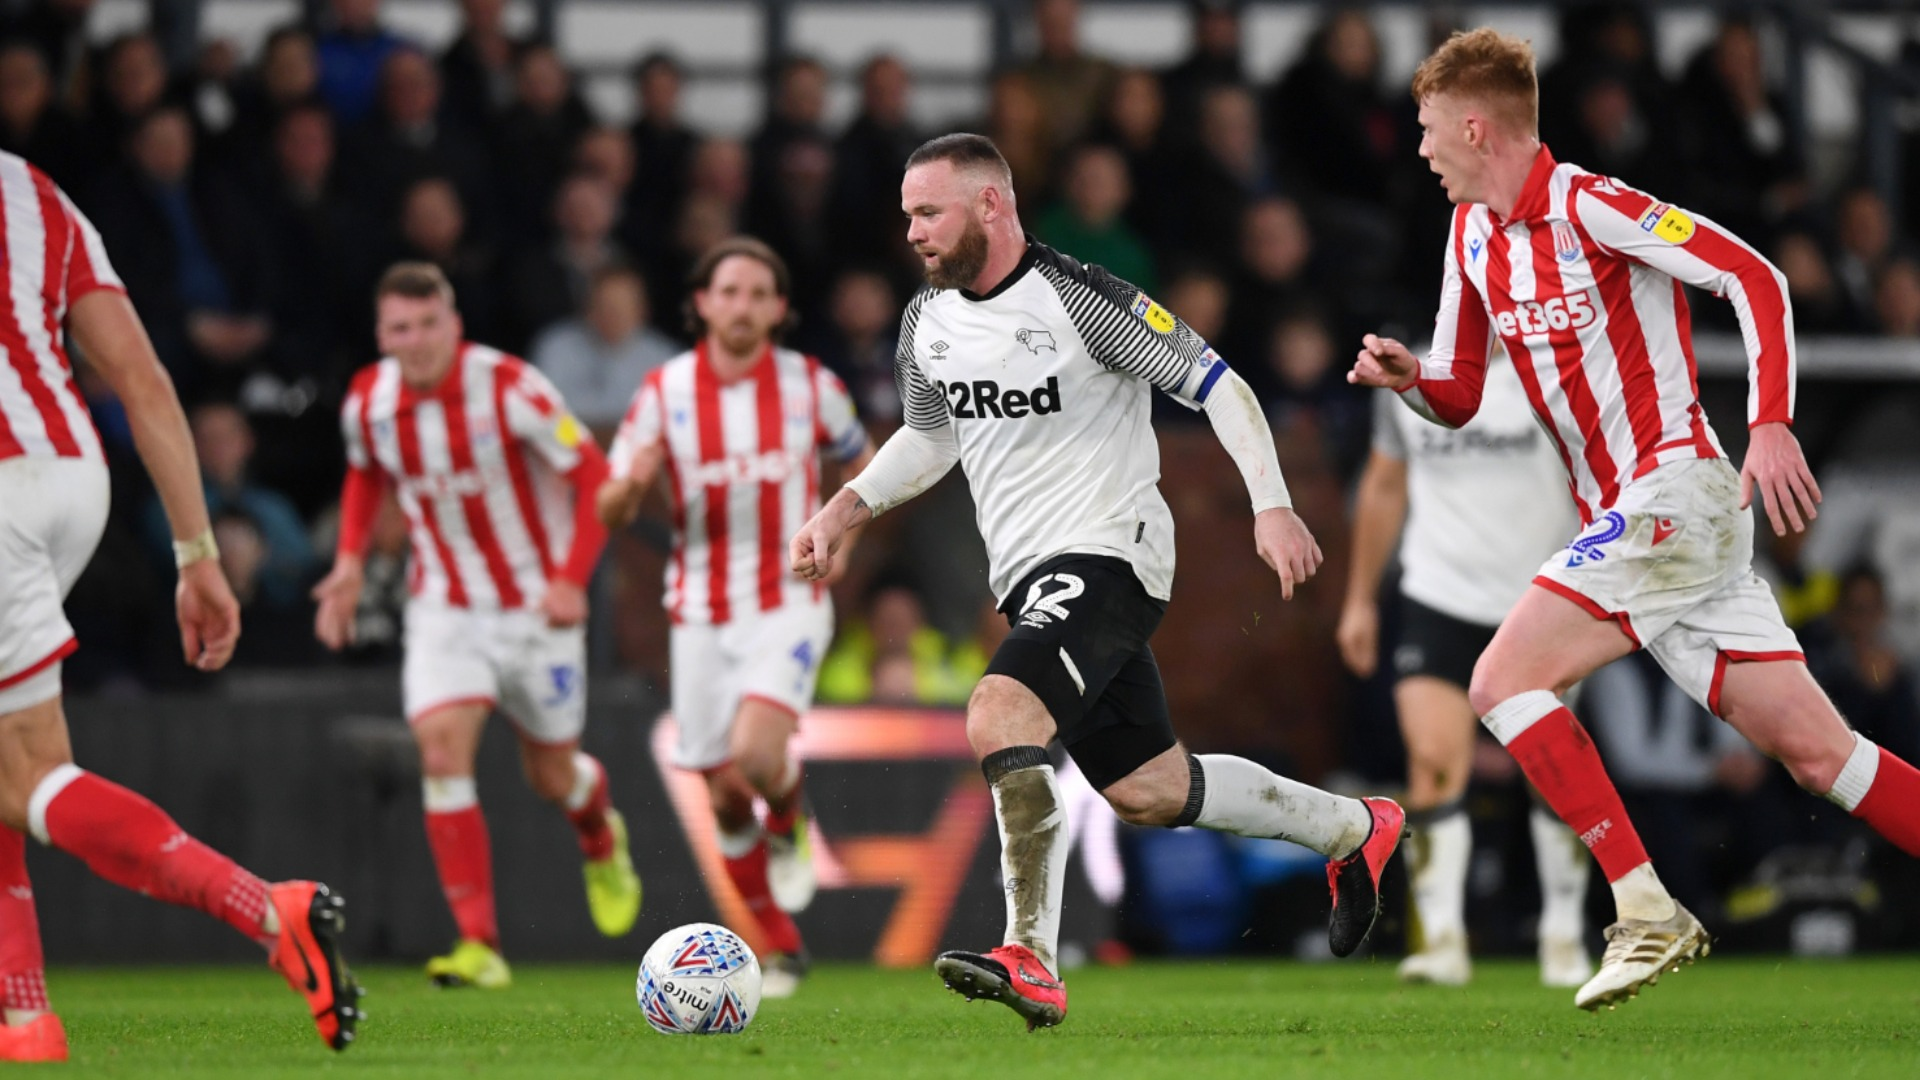 Championship: Rooney stunner helps Derby crush in-form Stoke